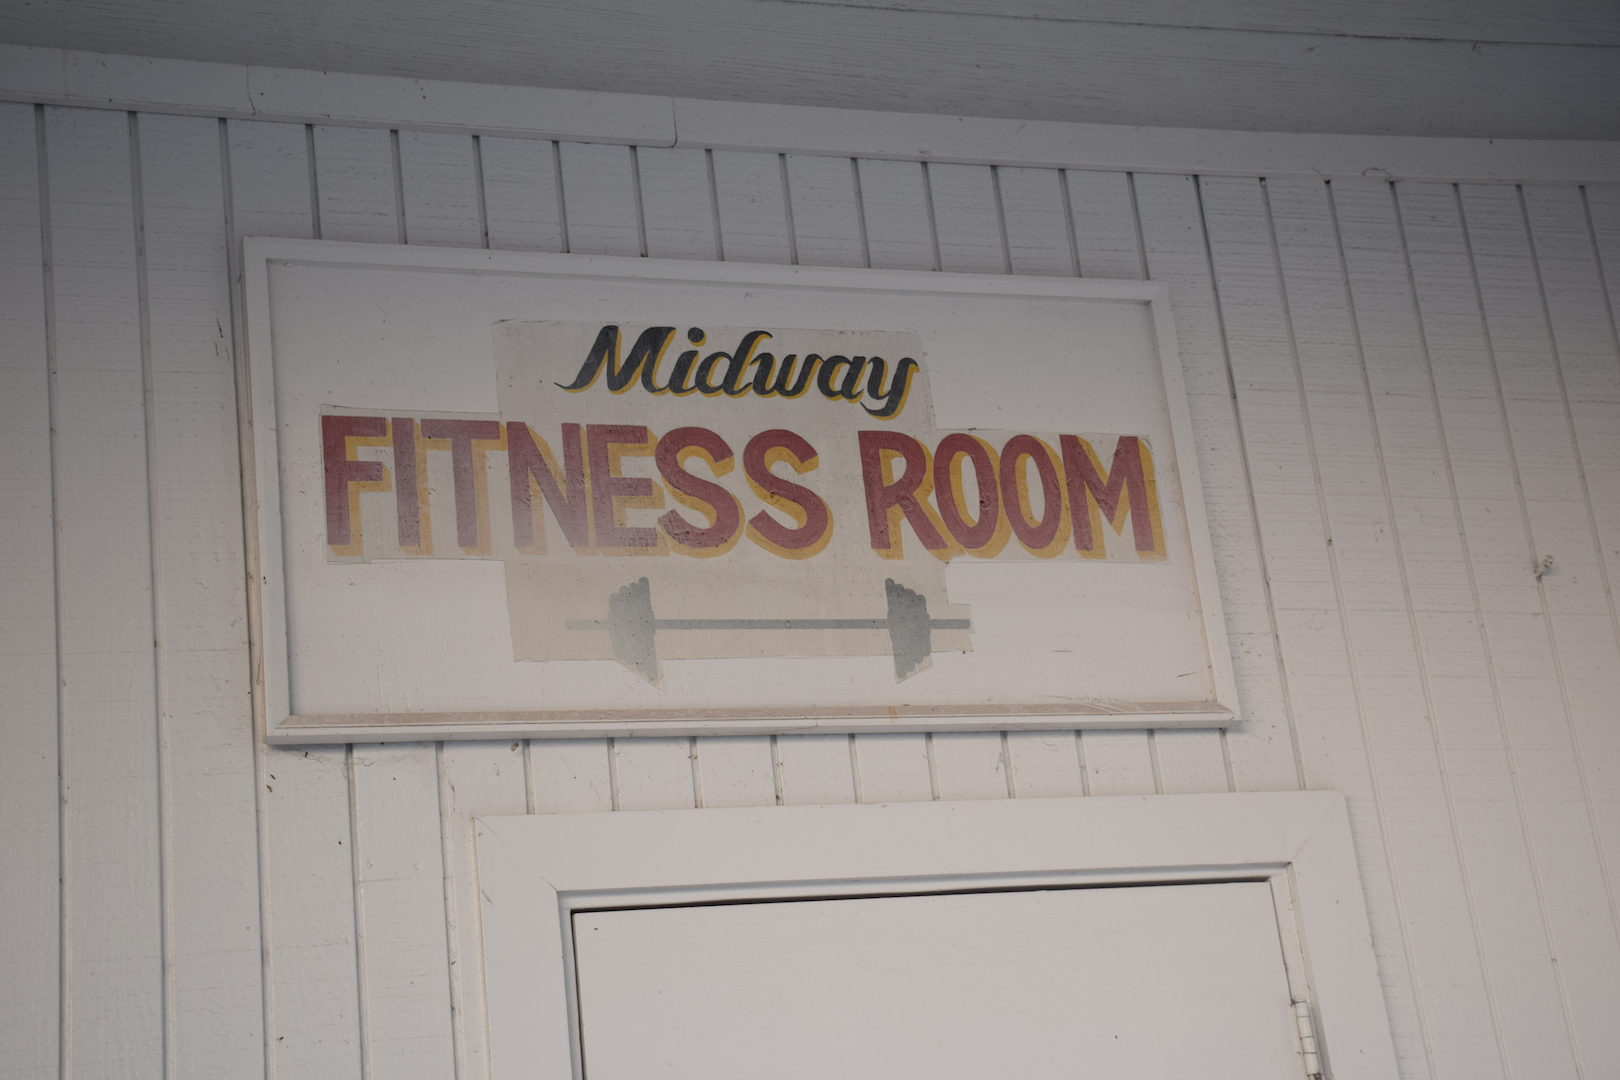 Midway, Atoll, Gym, Fitness, Room, 24 hour fitness, church of iron, temple of gains,